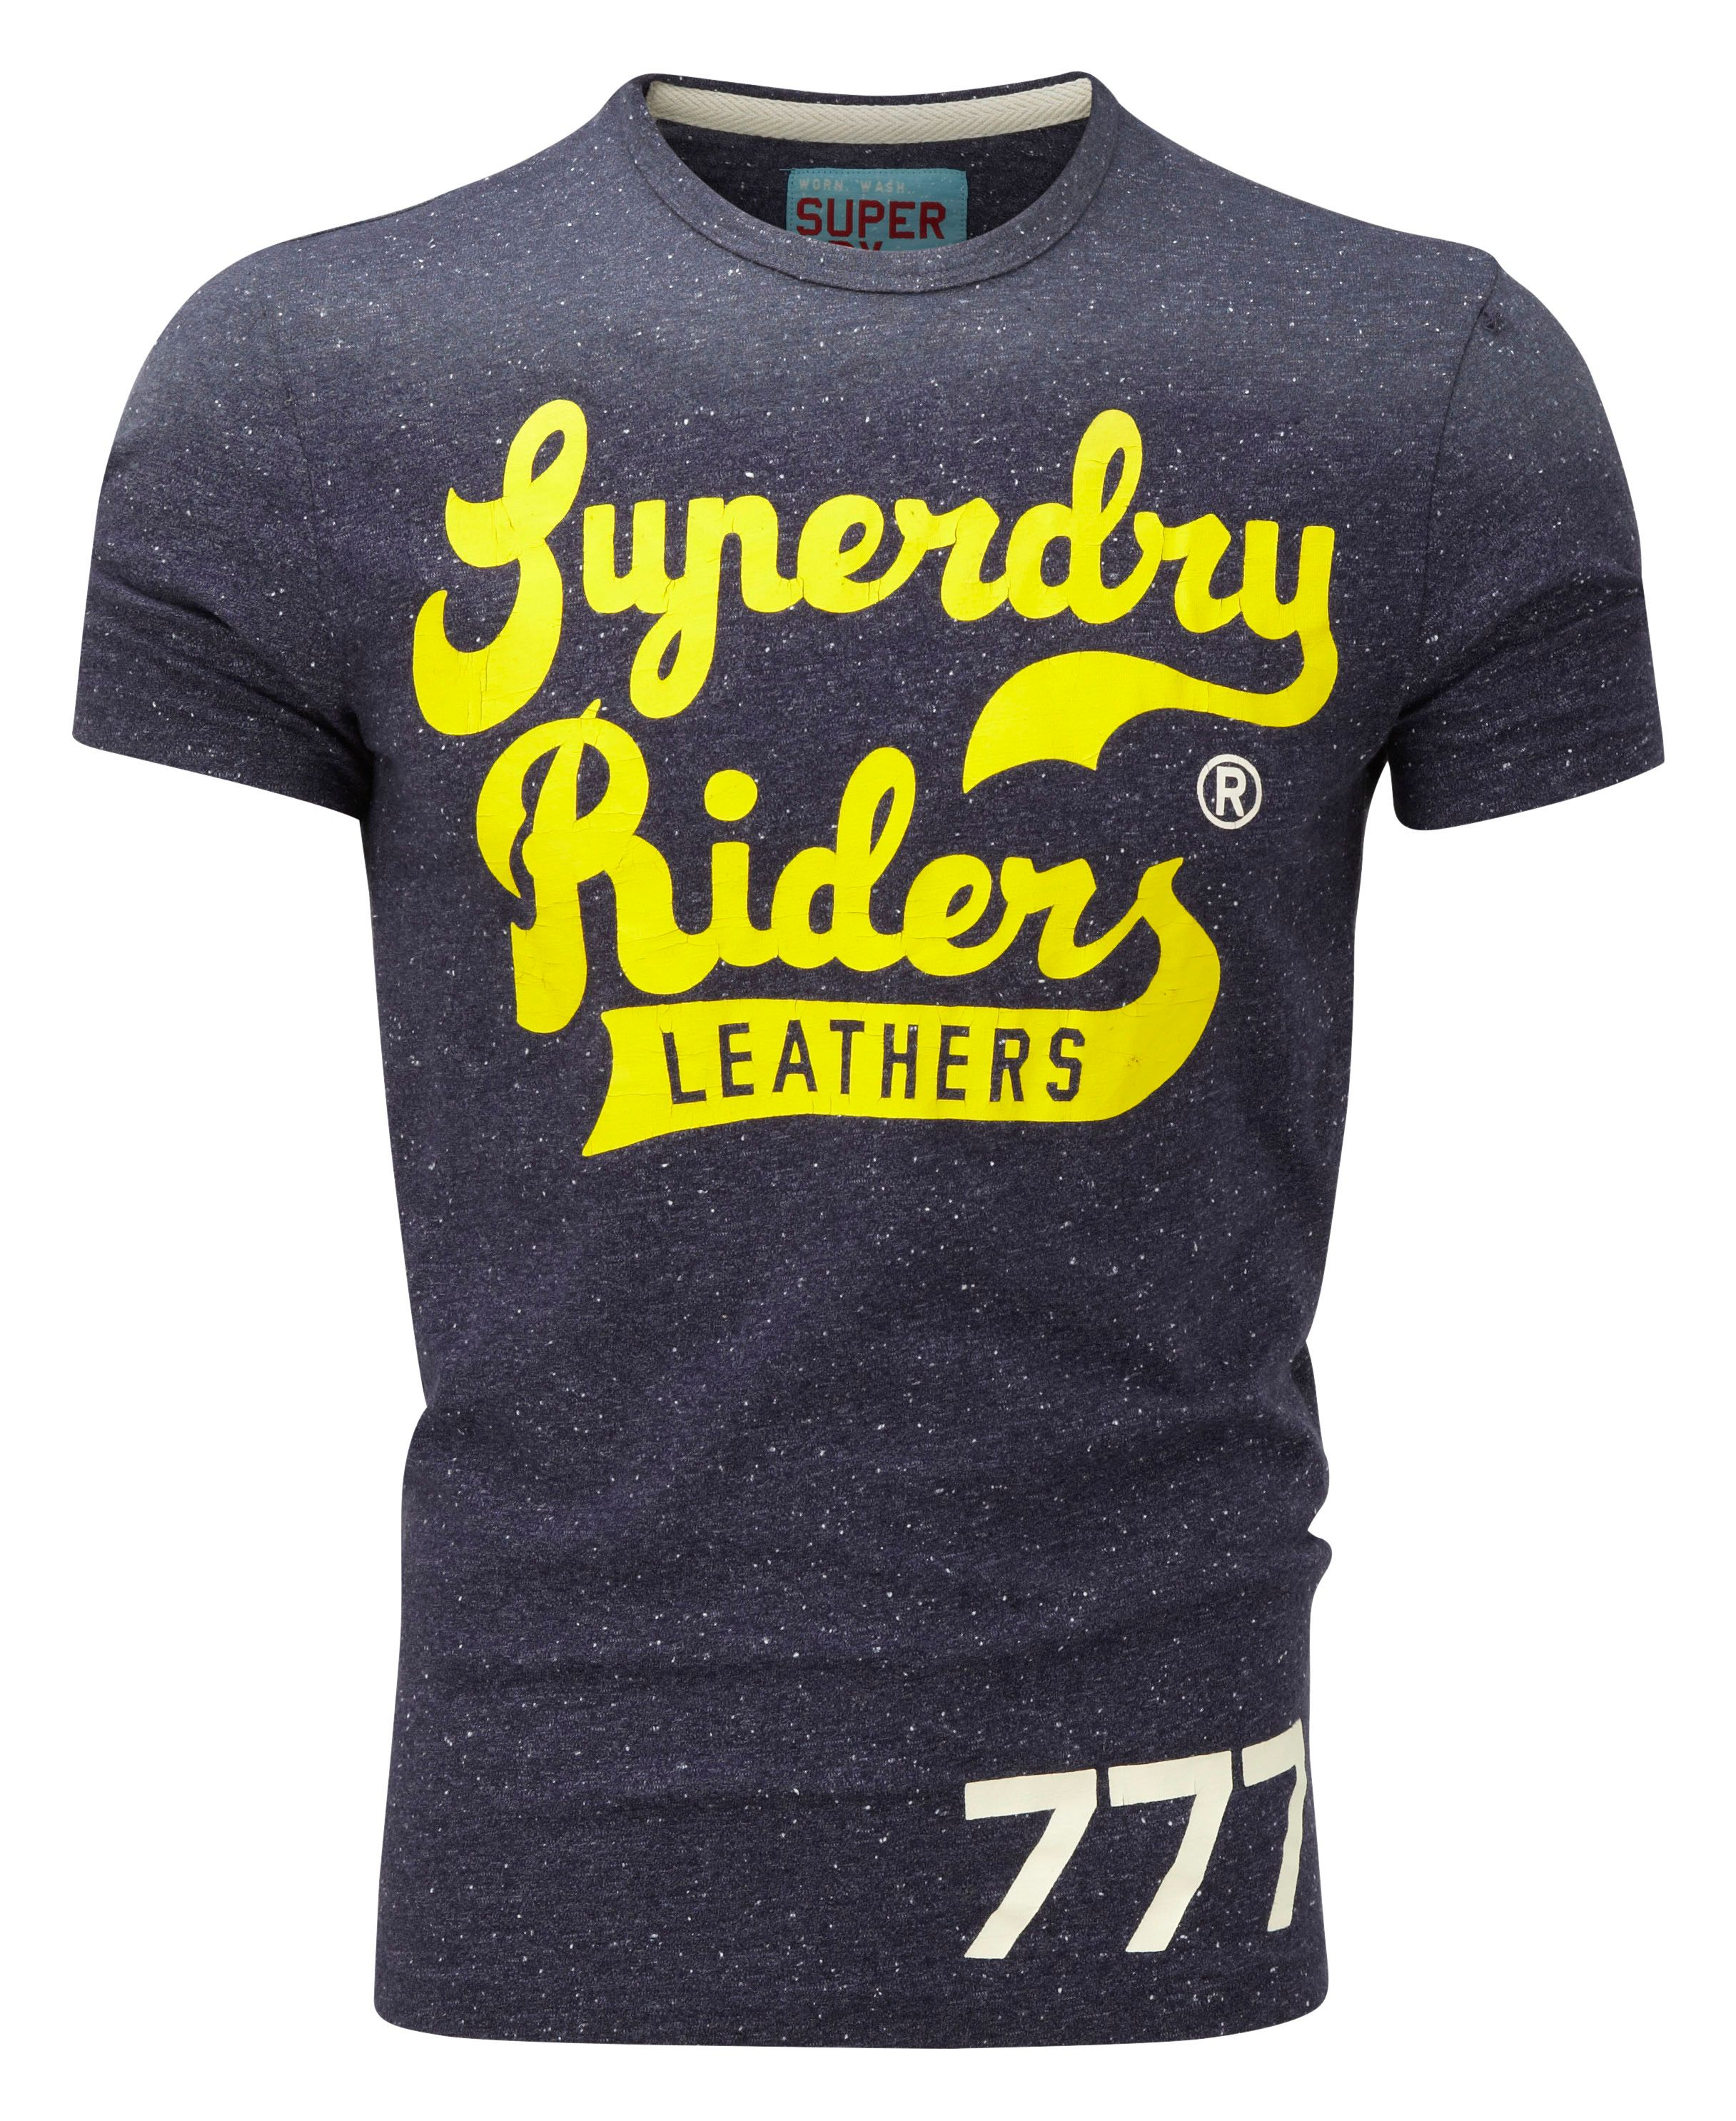 All riders t-shirt